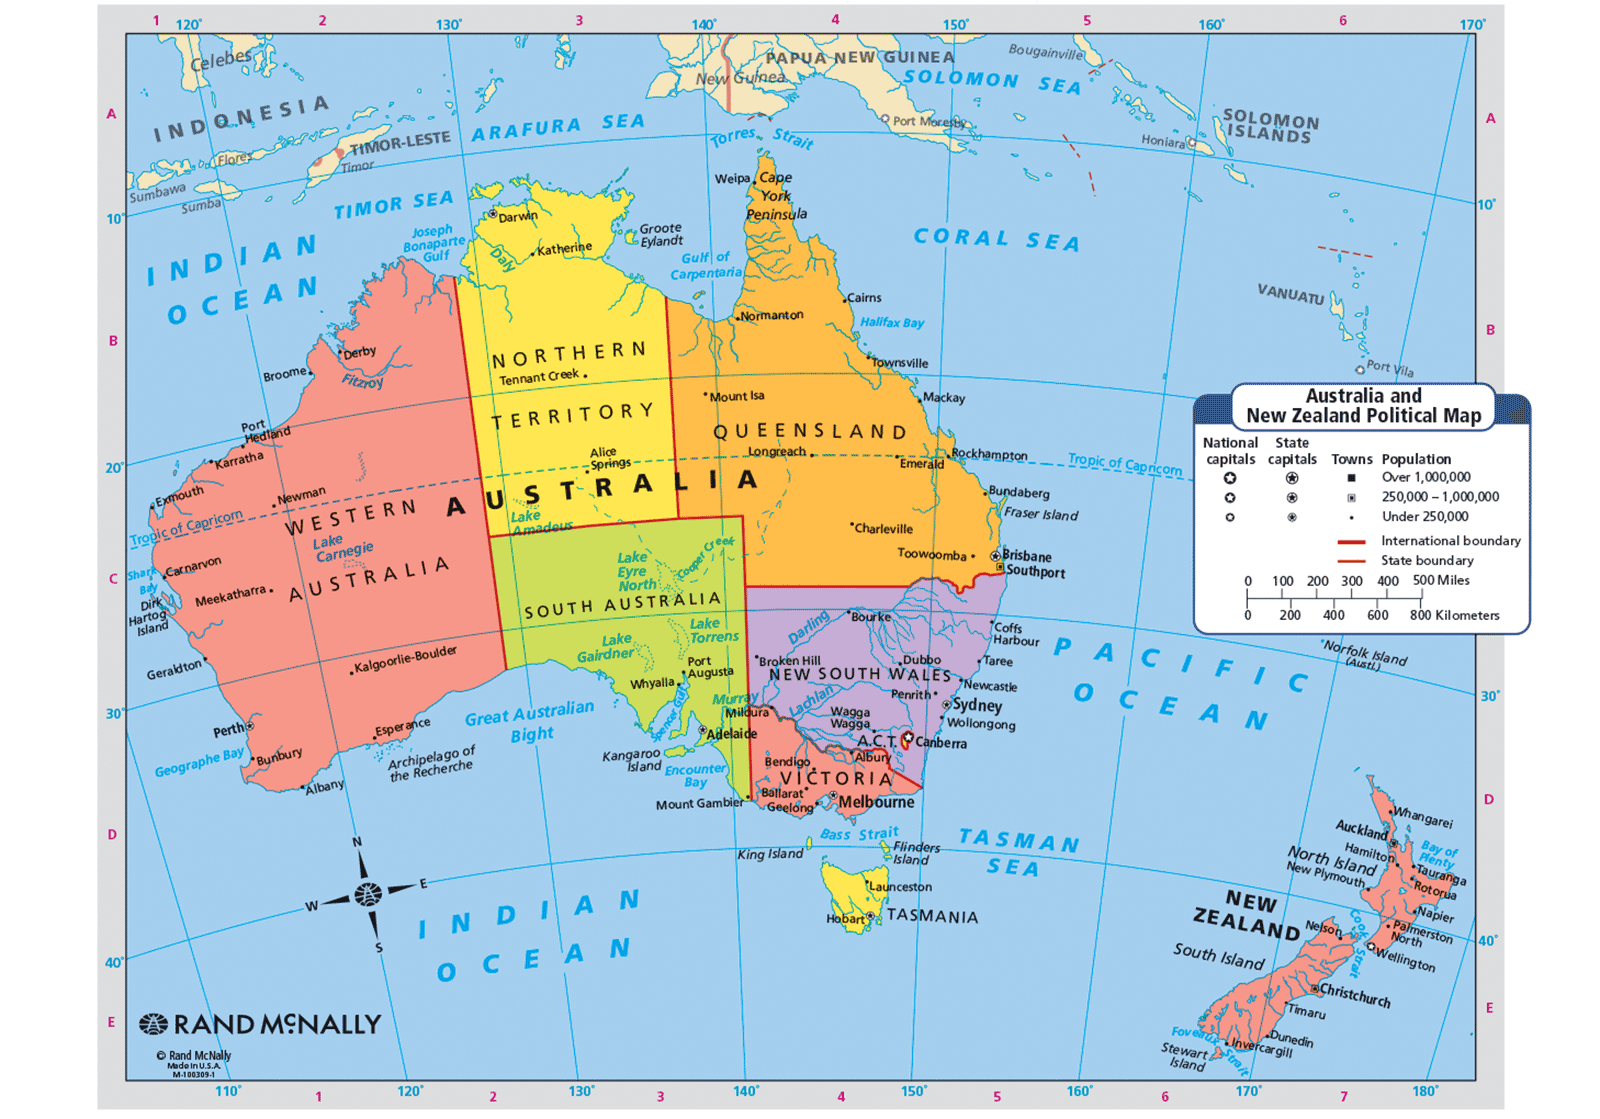 Map showing the states of Australia and New Zealand.